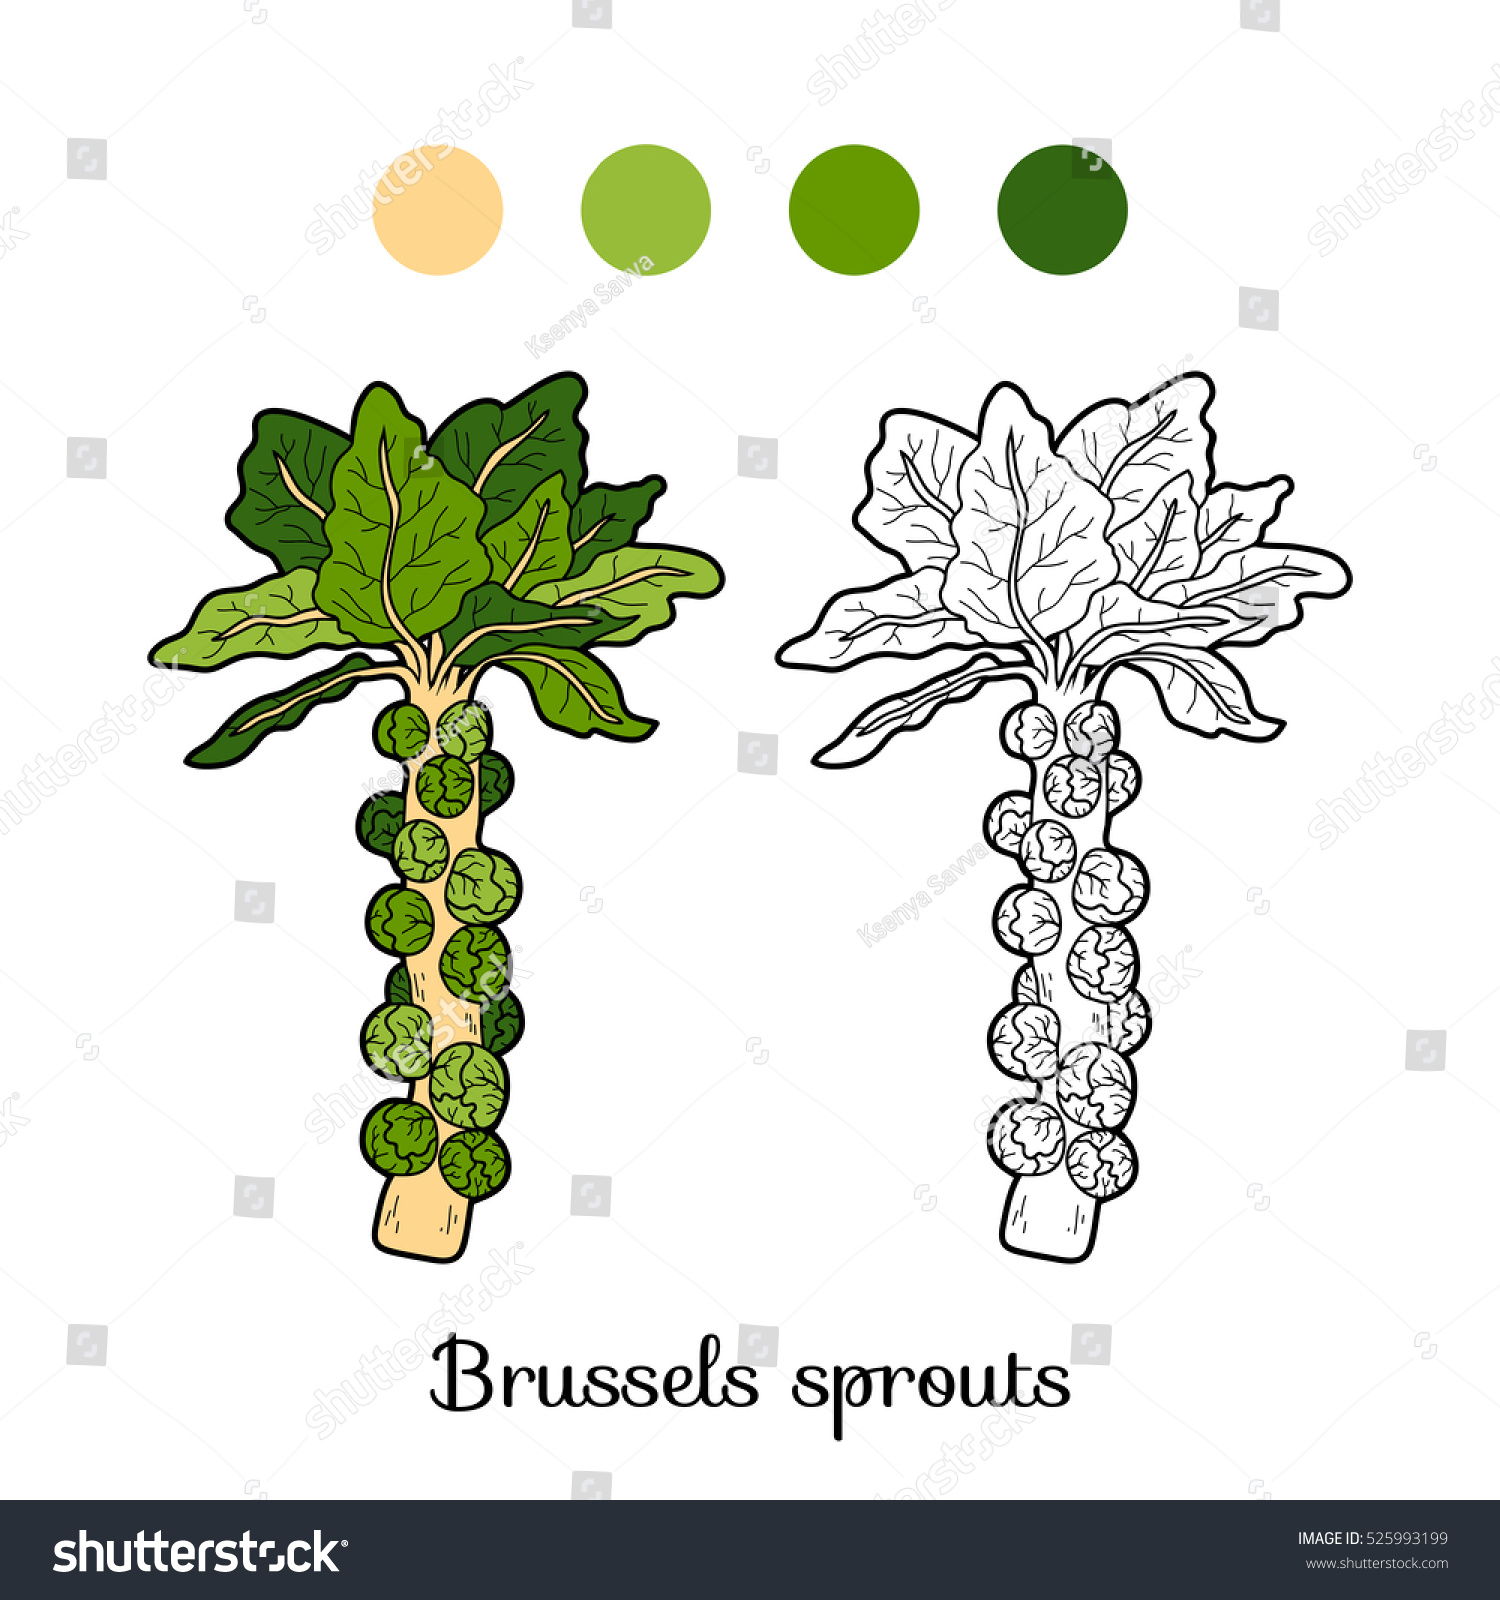 Coloring Book Children Vegetables Brussels Sprouts Stock Vector ...